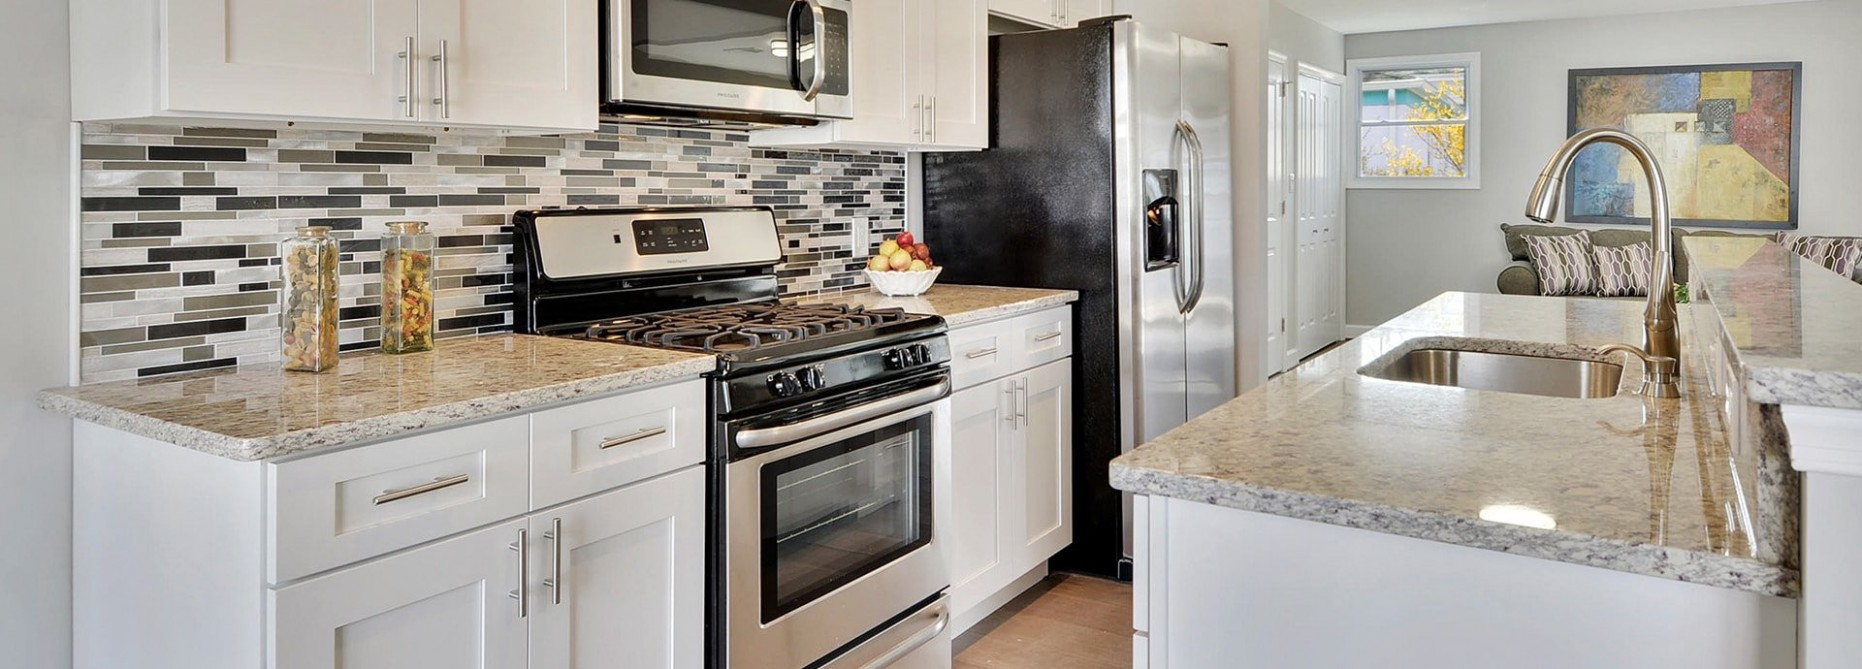 How to Choose the Right Wholesale Kitchen Cabinets on a Budget  - Wholesale Kitchen Cabinets And Granite